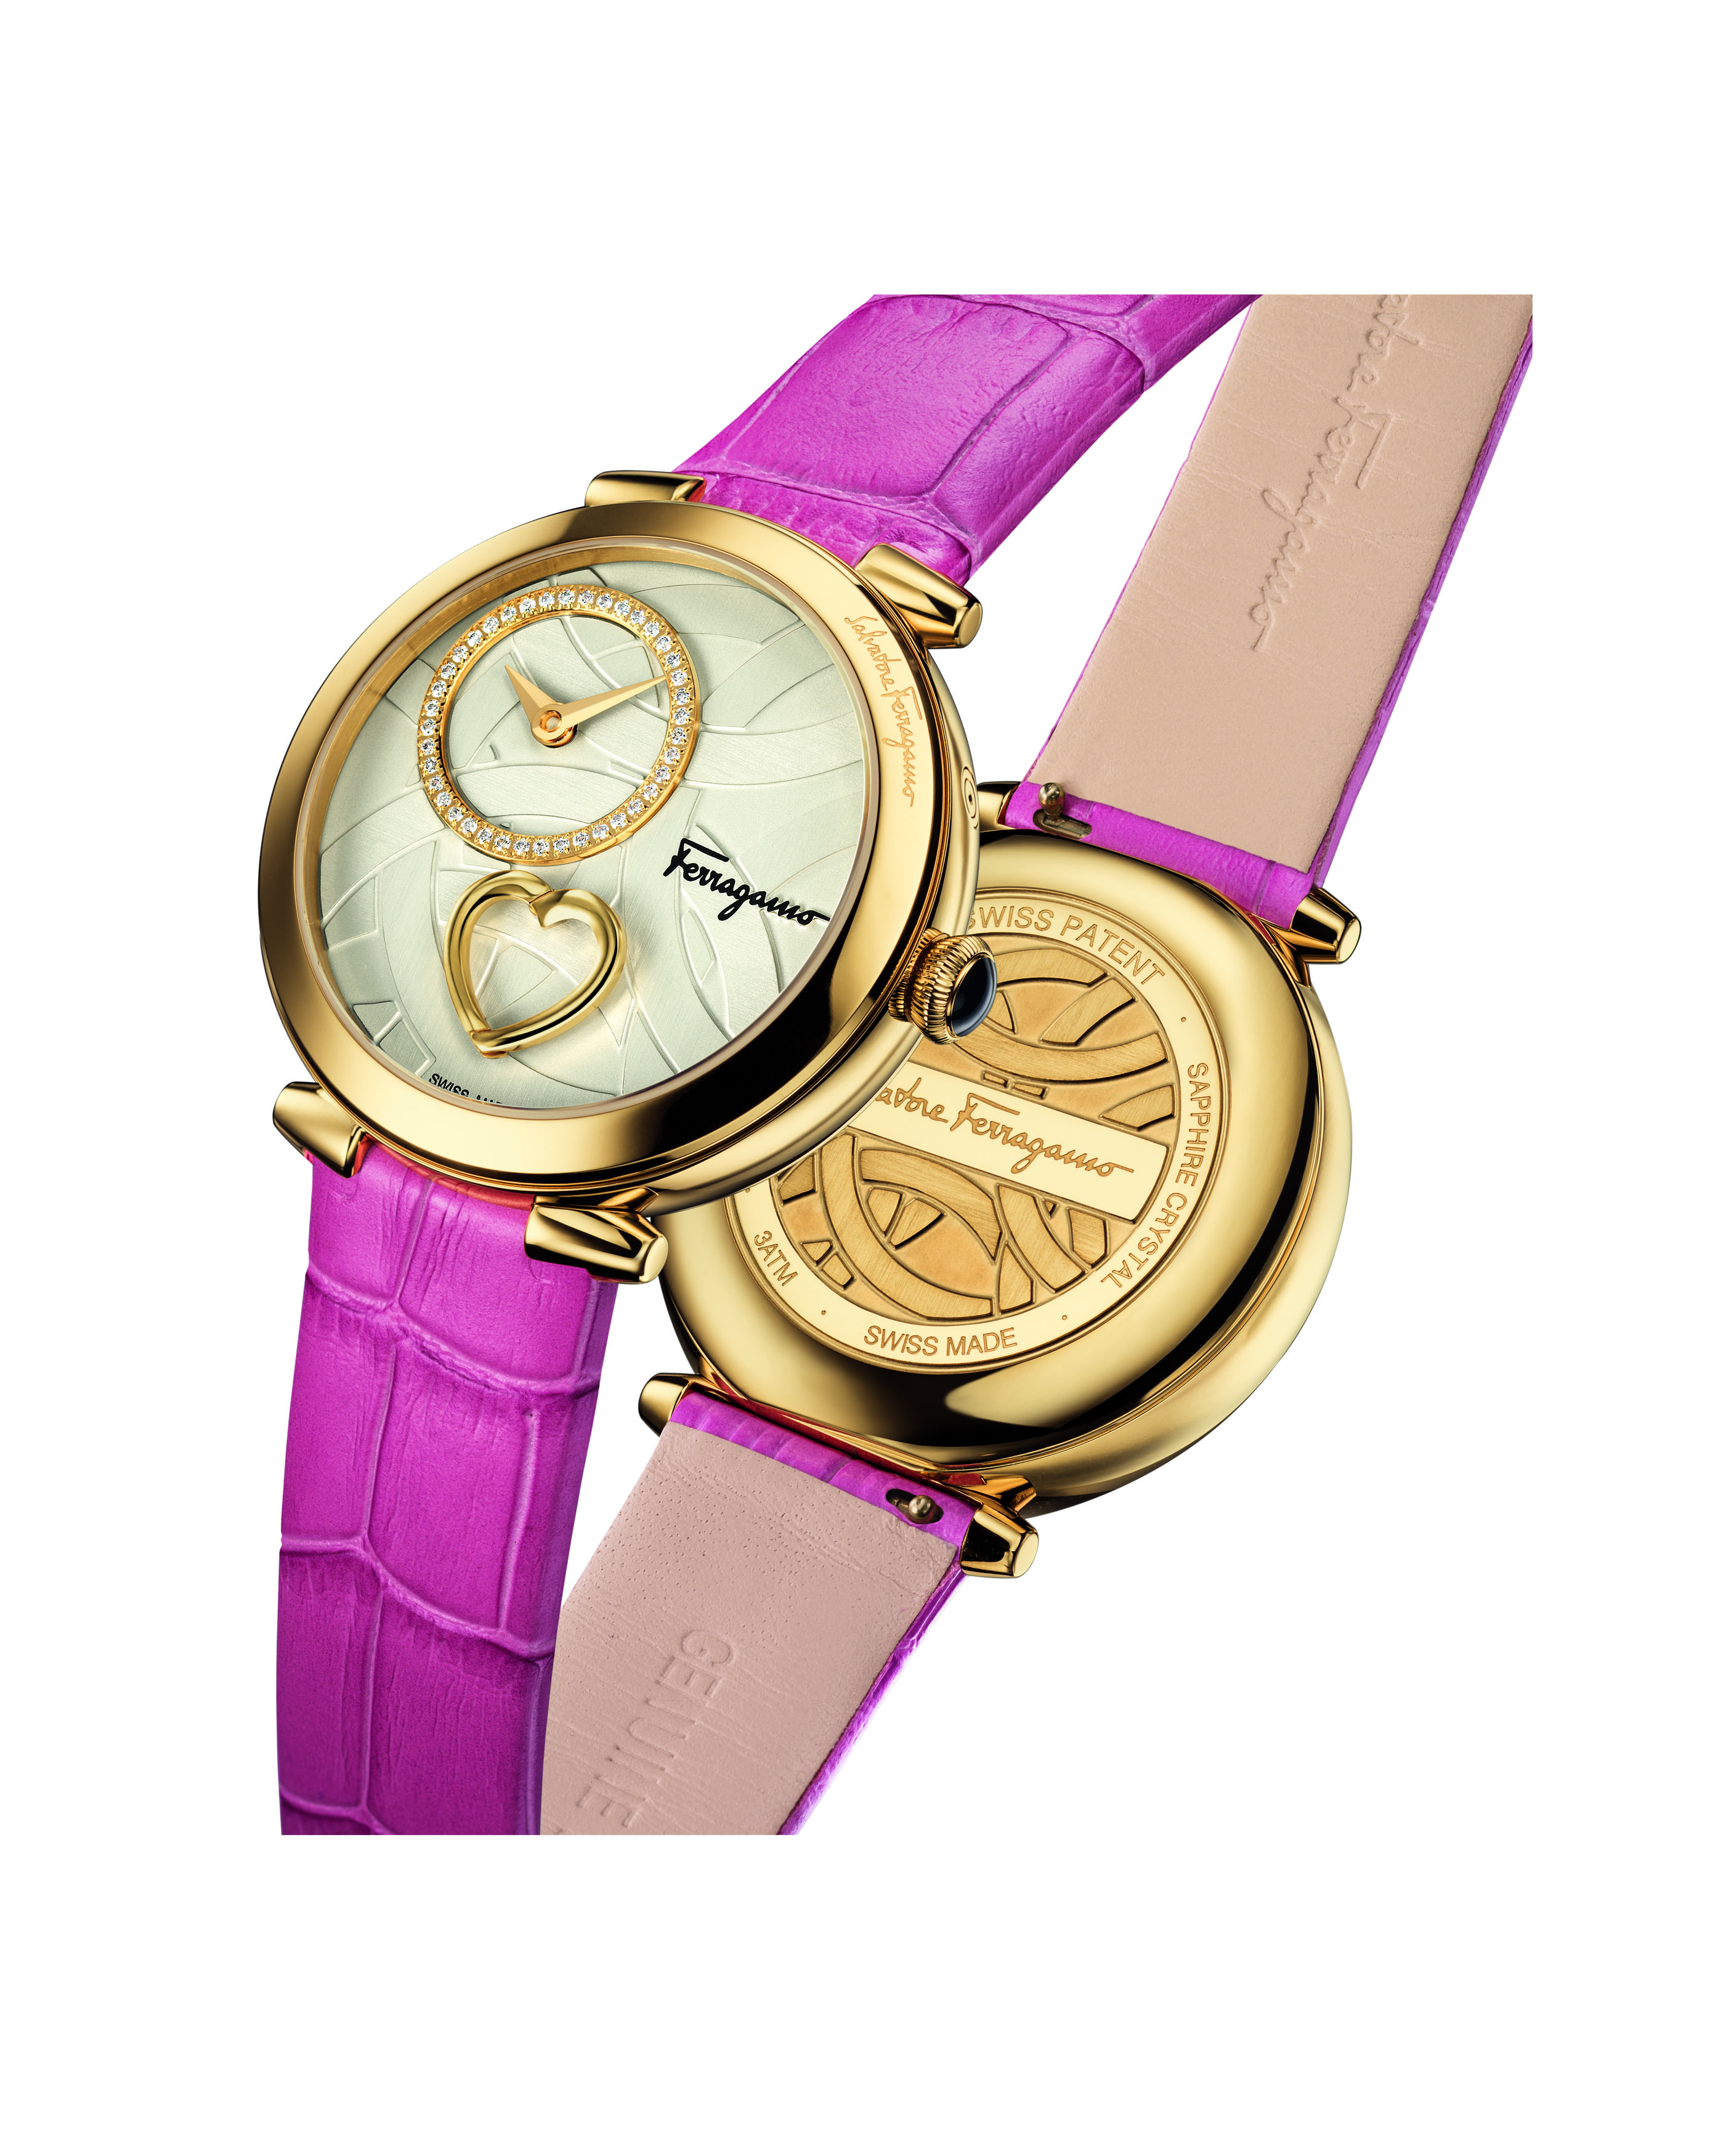 Cuore by Ferragamo watch with textured dial, diamonds and beating heart. It retails for $2,595.